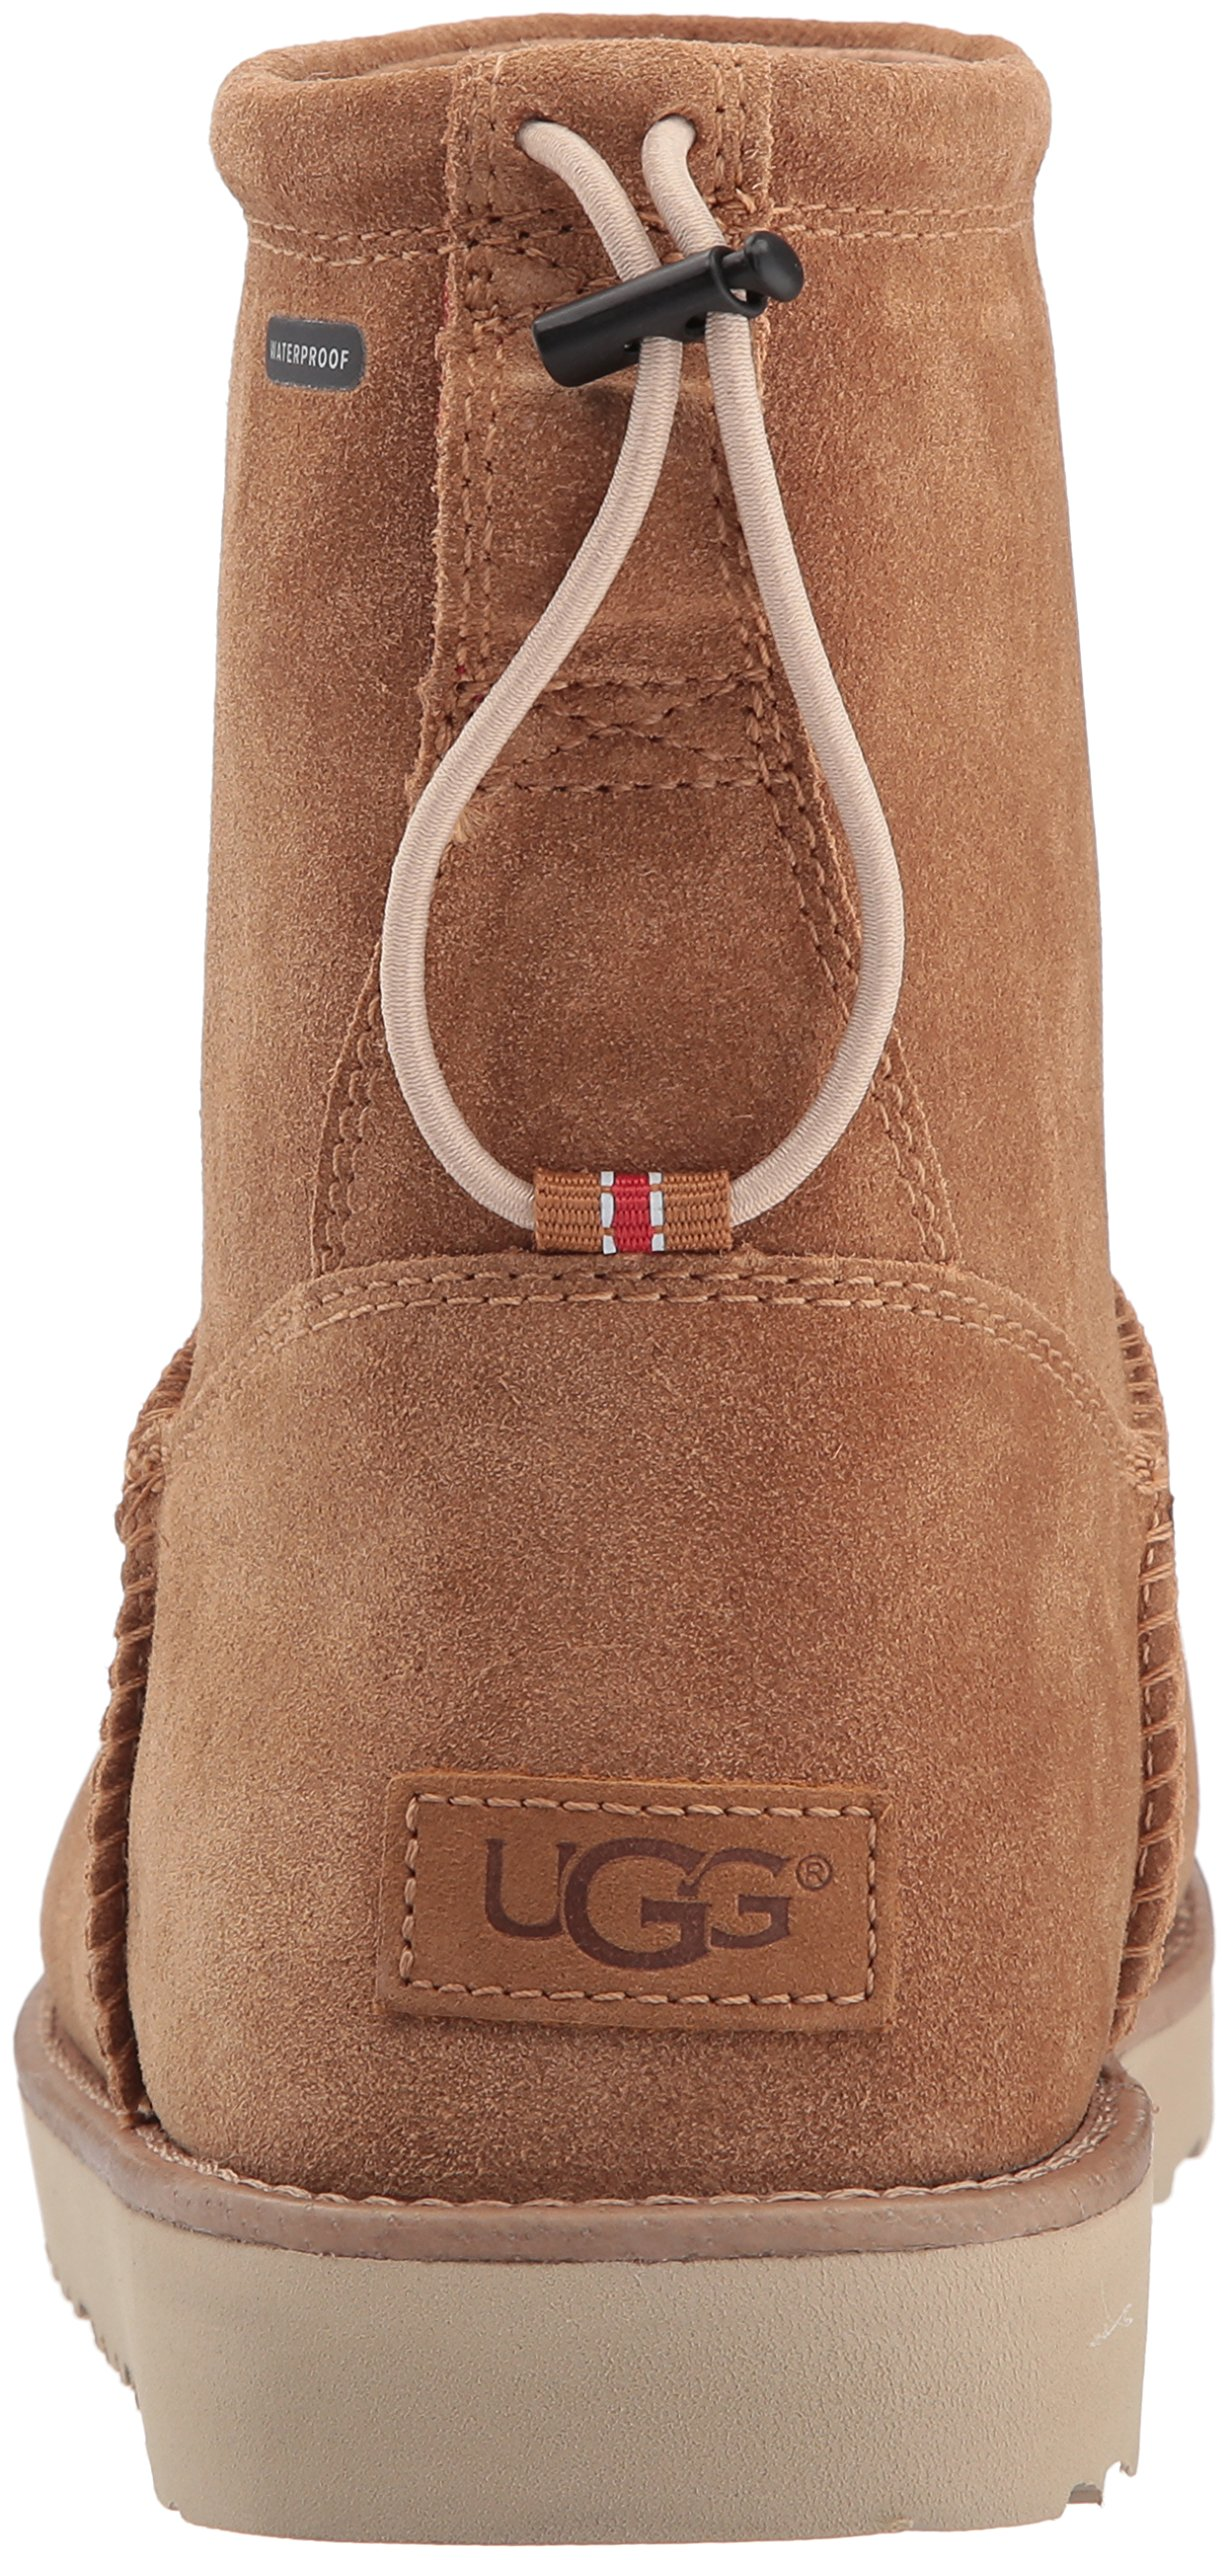 UGG Men's Classic Toggle Waterproof Winter Boot, Chestnut, 11 M US by UGG (Image #2)